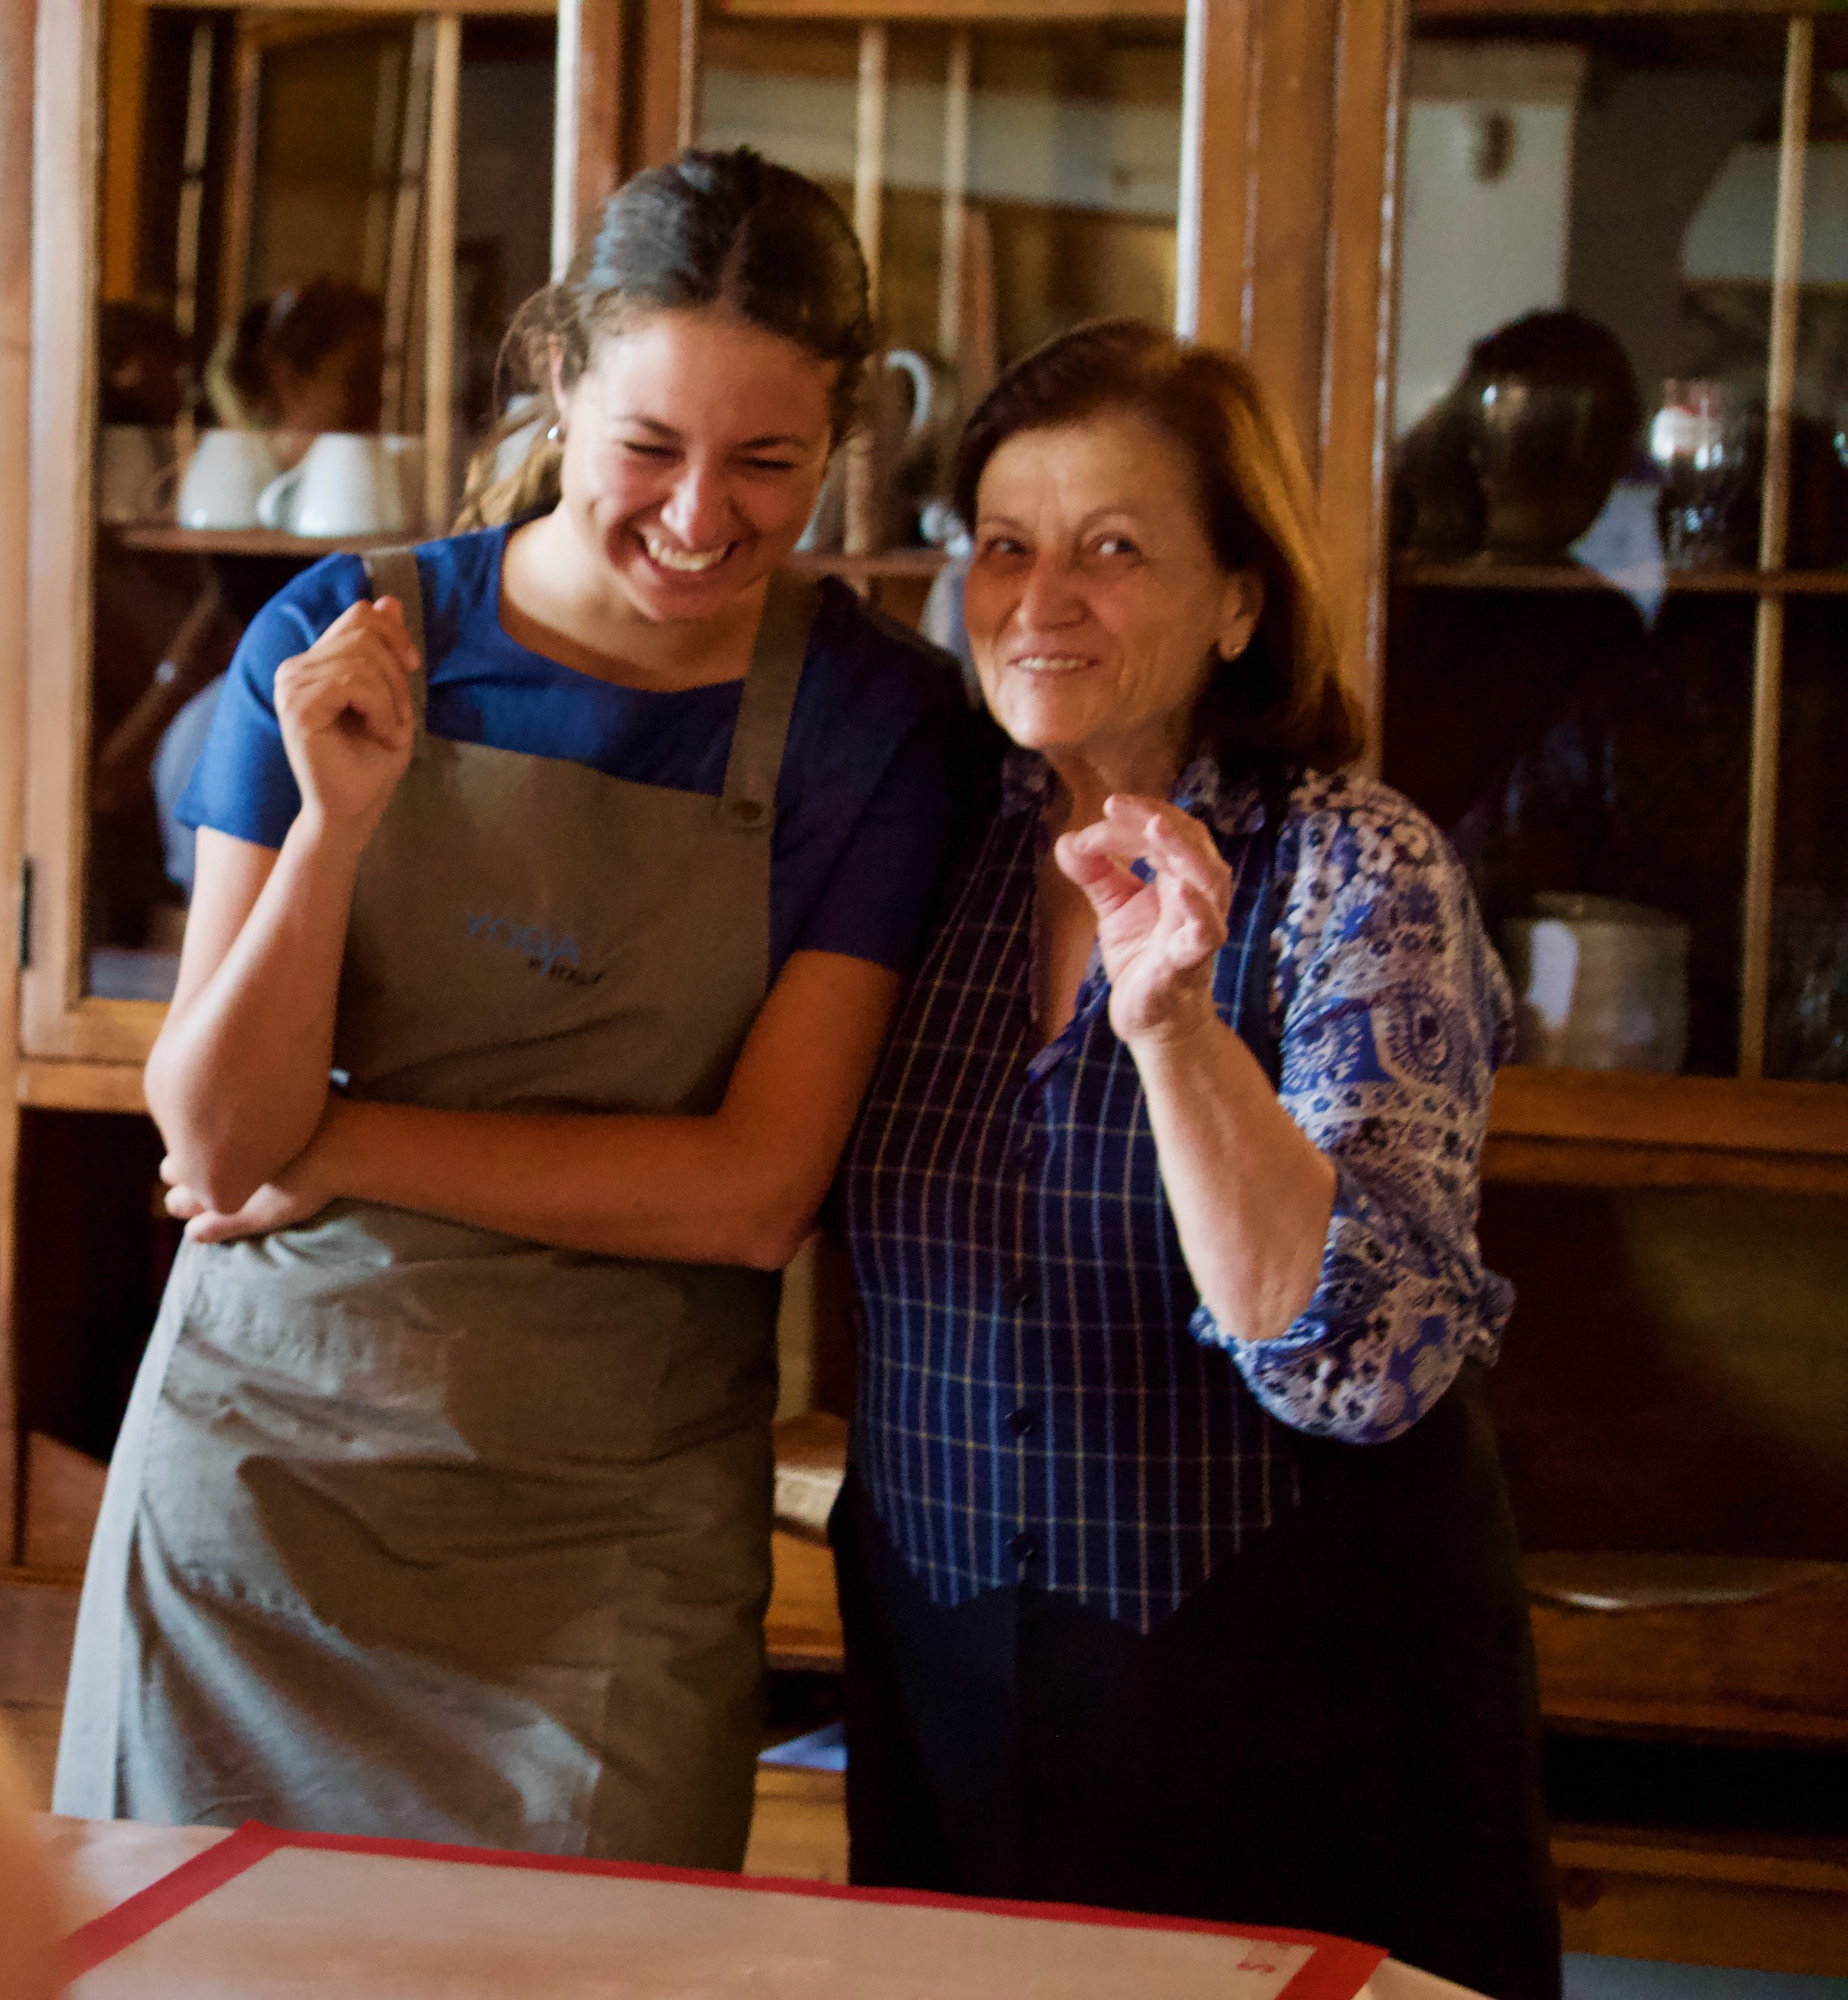 The food at Il Borghino is AMAZING. Every day we get the most fabulous multi-dish vegetarian meals. The lovely lady on the right is our head chef. The lovely lady on the left is her translator for our cooking lesson.